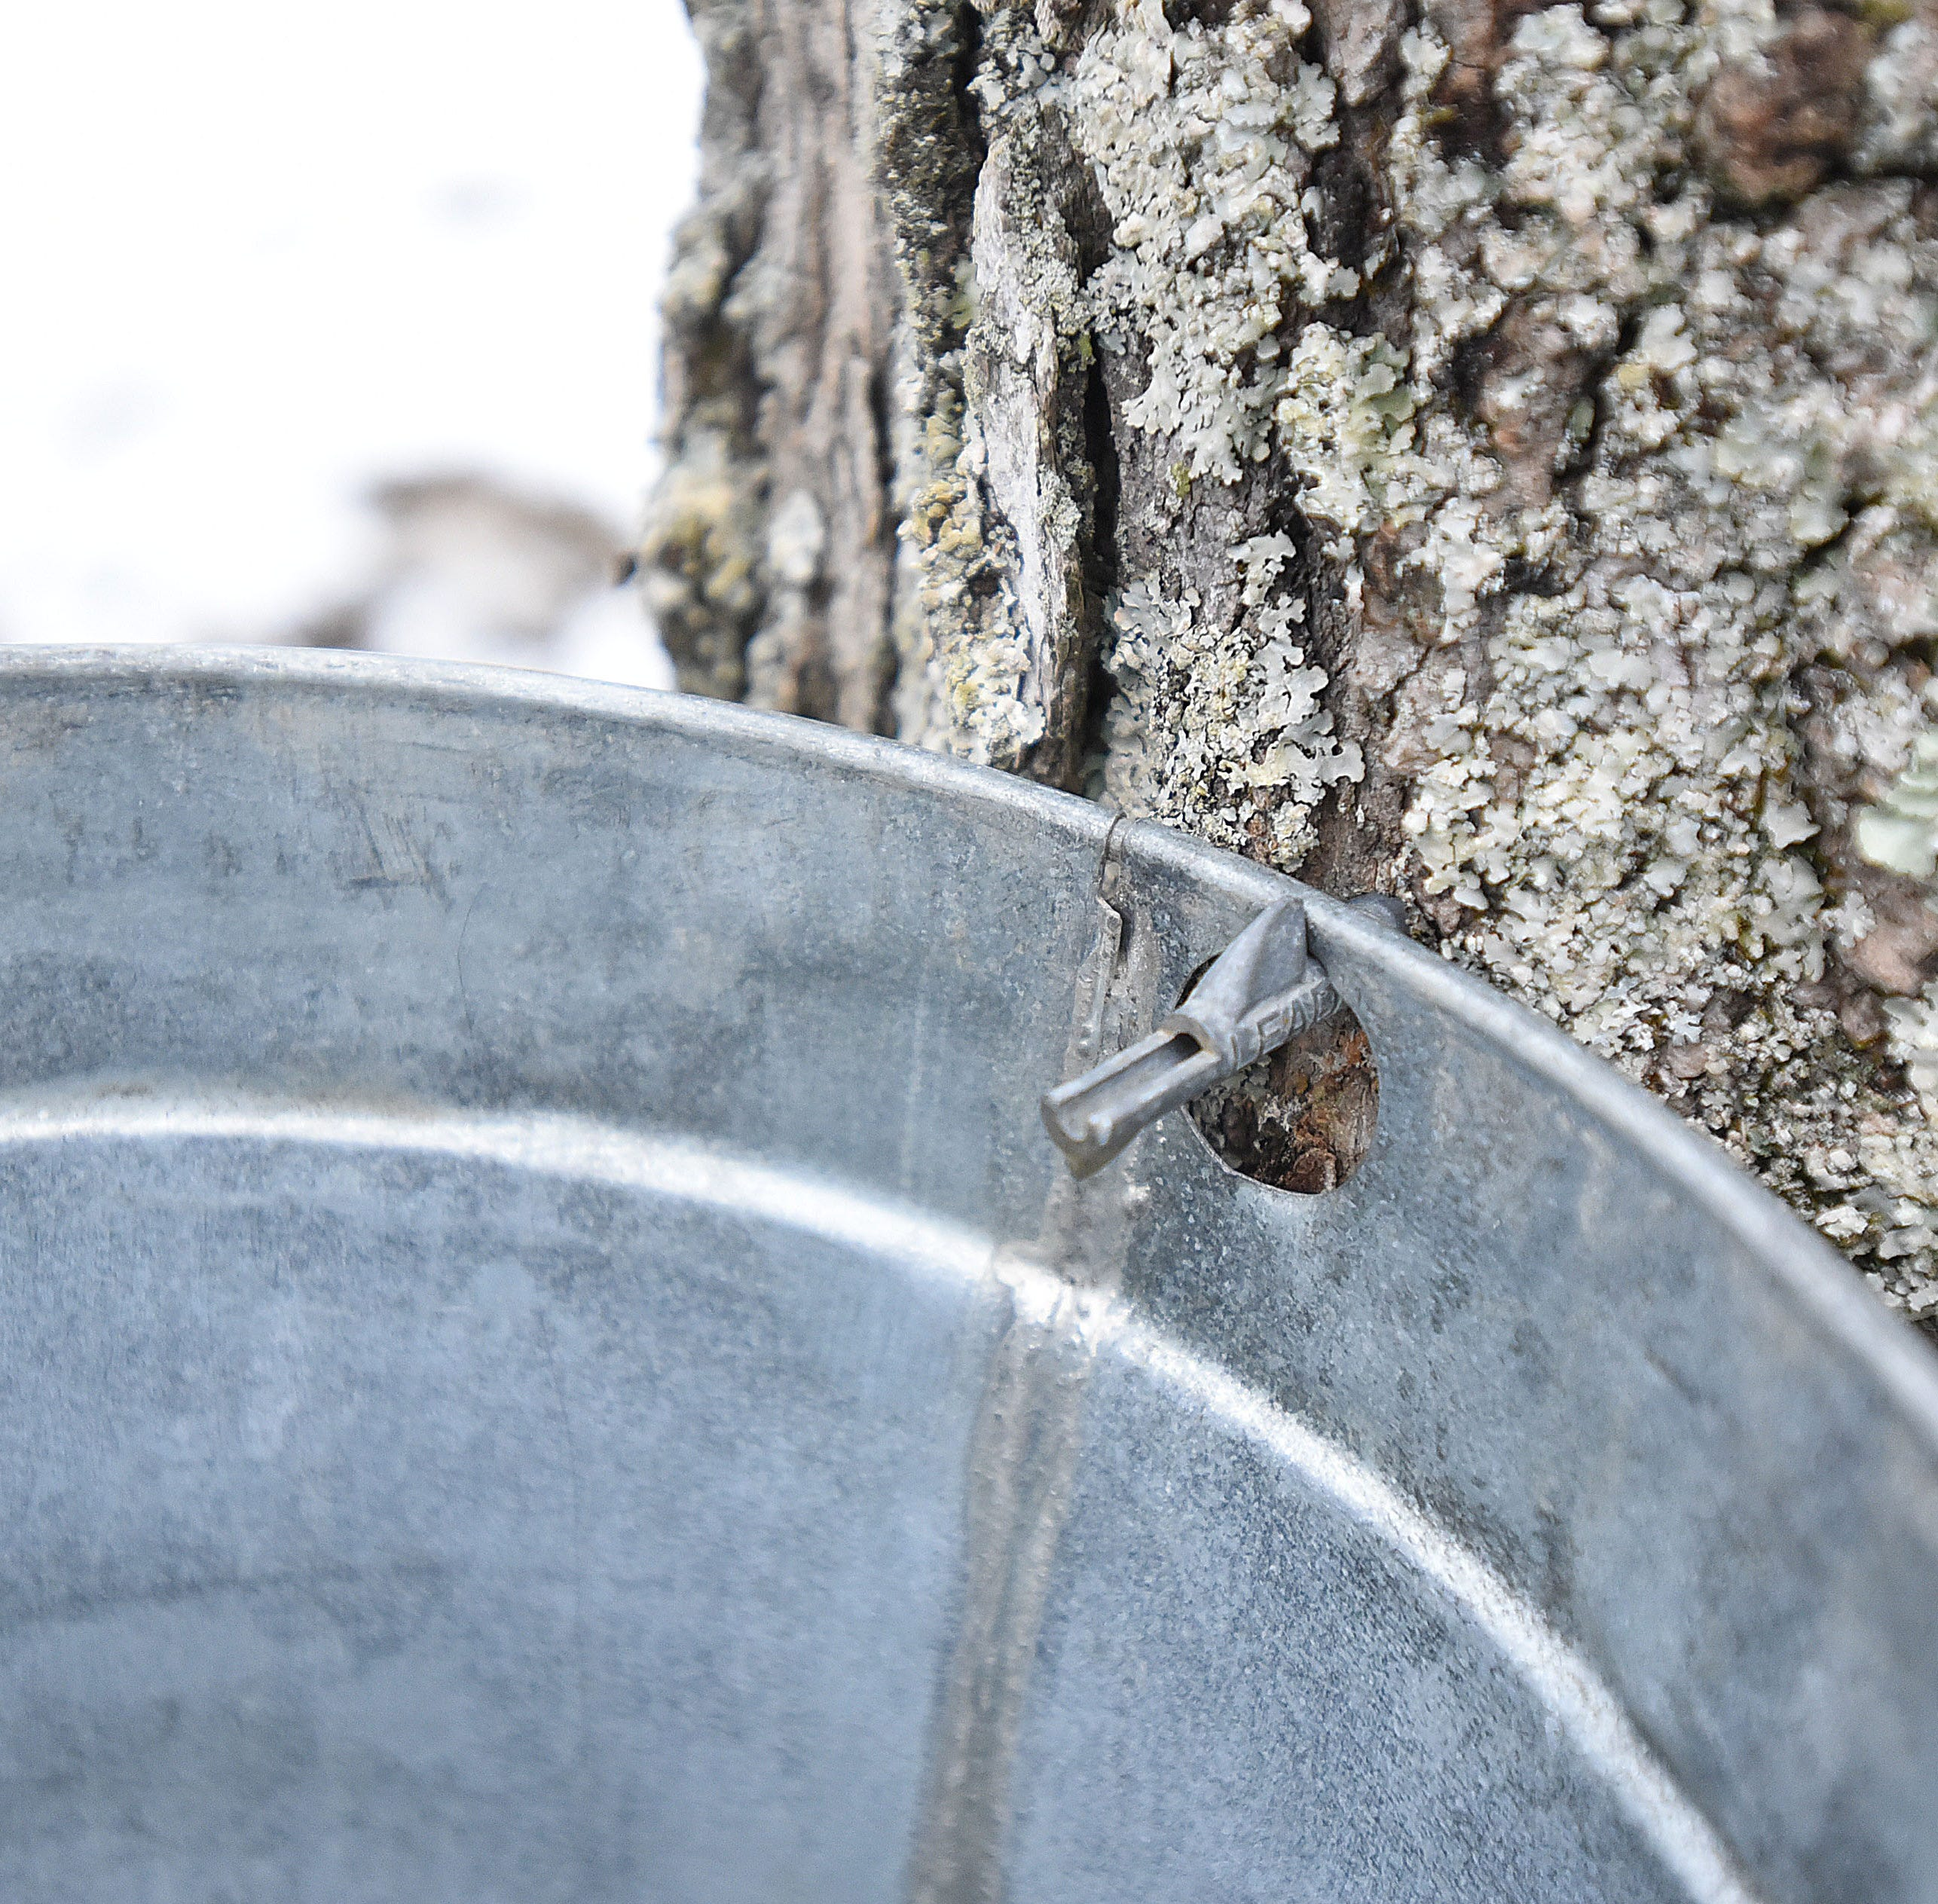 In The Garden | Maple syrup season is upon us